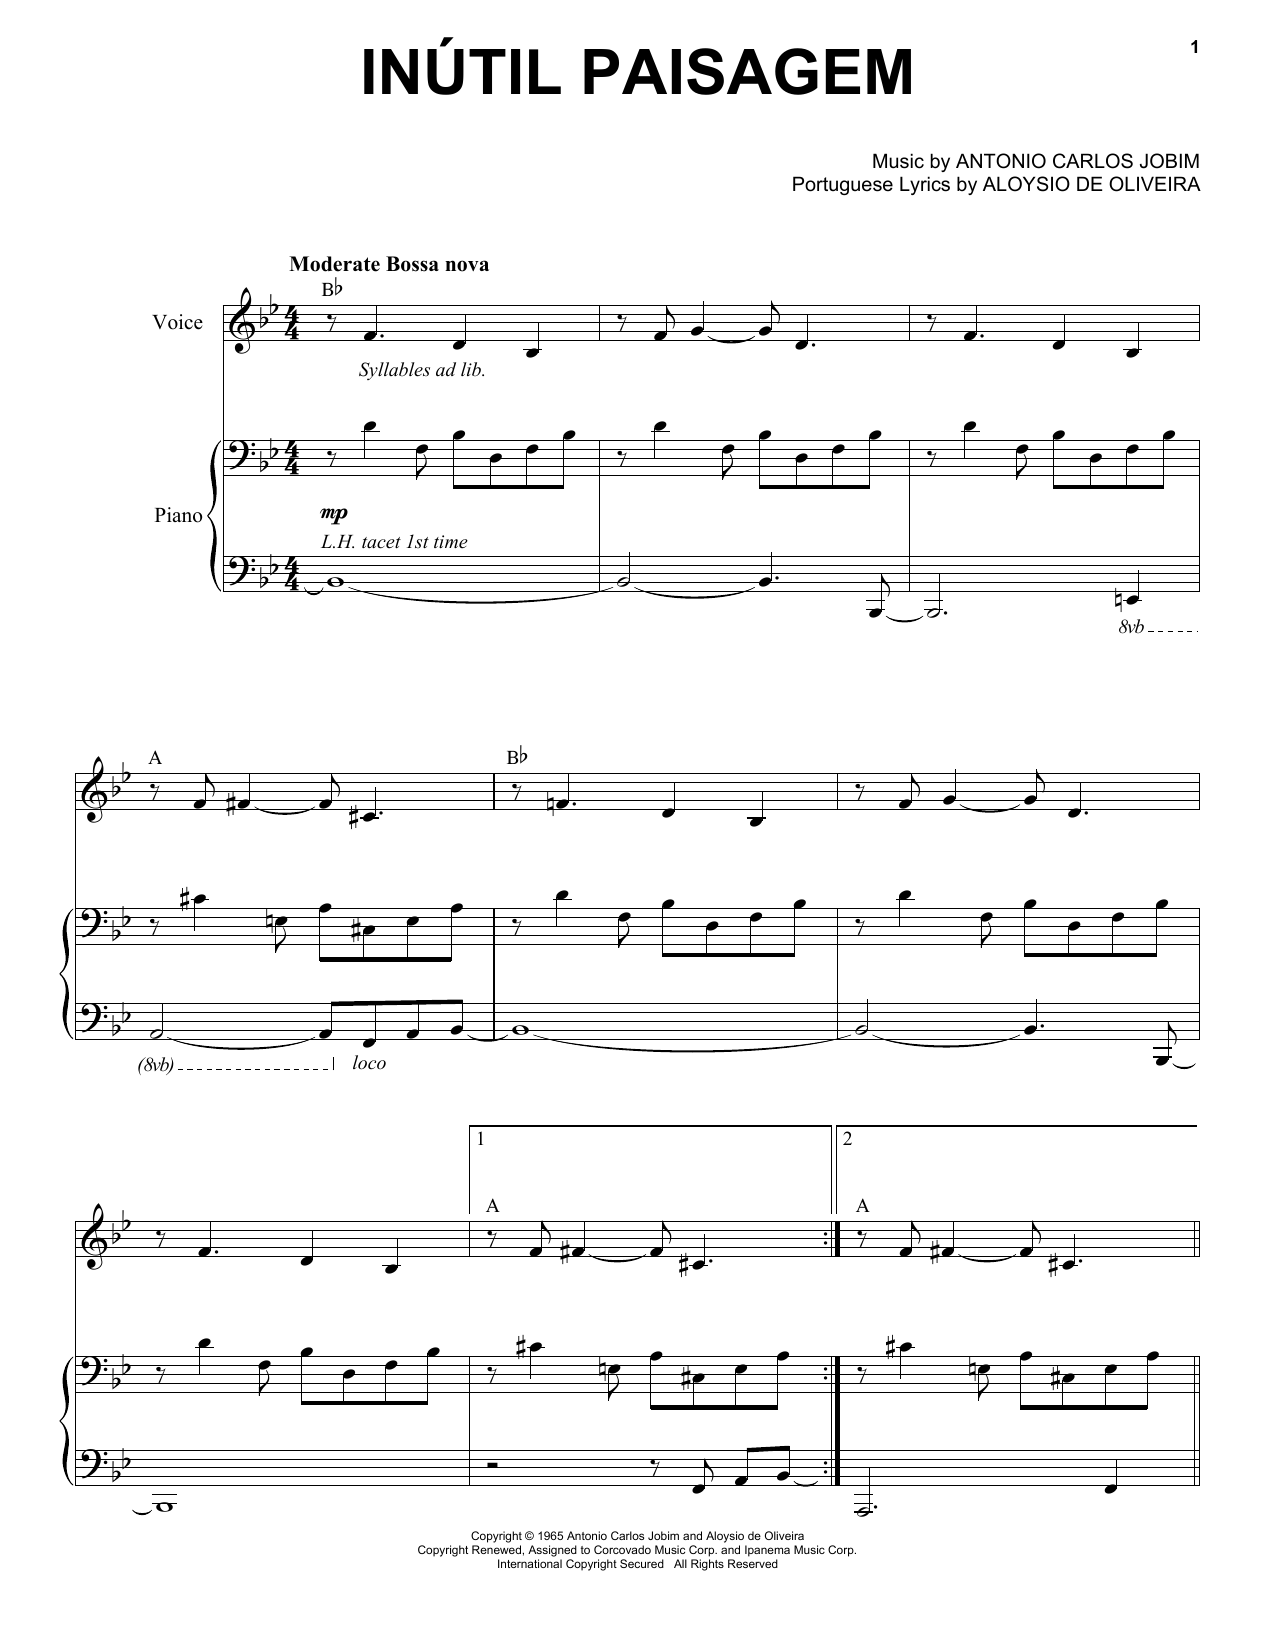 Inutil Paisagem Sheet Music